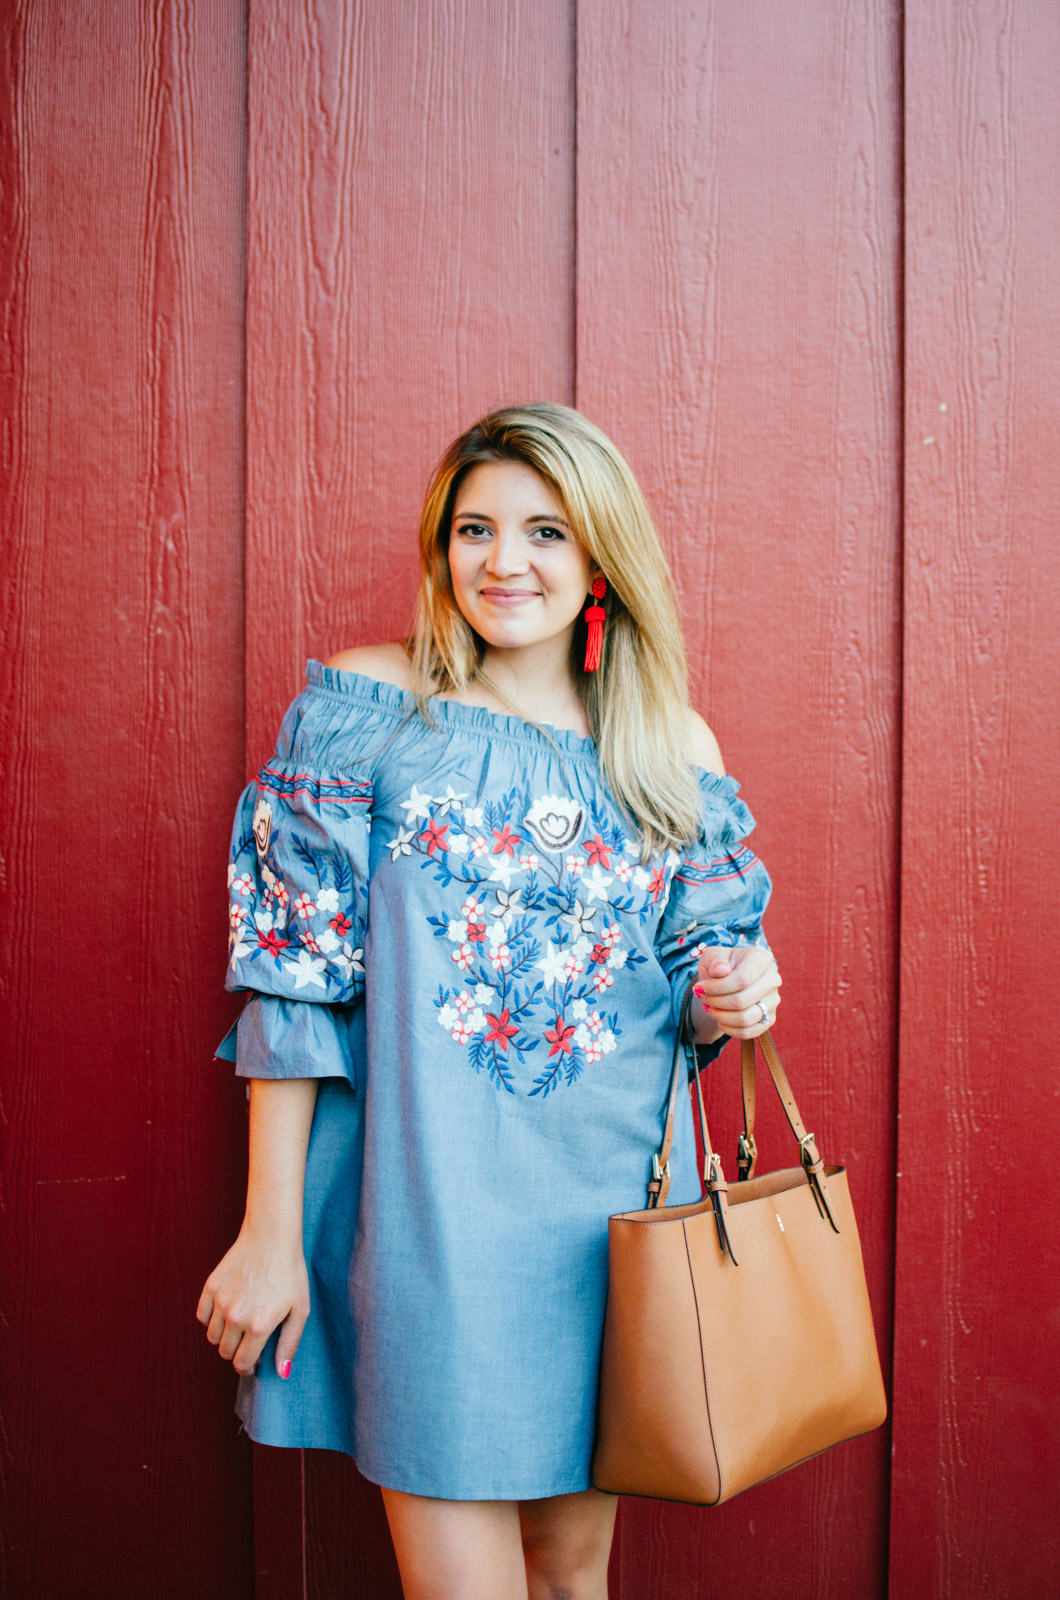 booties with a dress outfit - embroidered chambray dress | For more cute casual outfit ideas, head to bylaurenm.com!